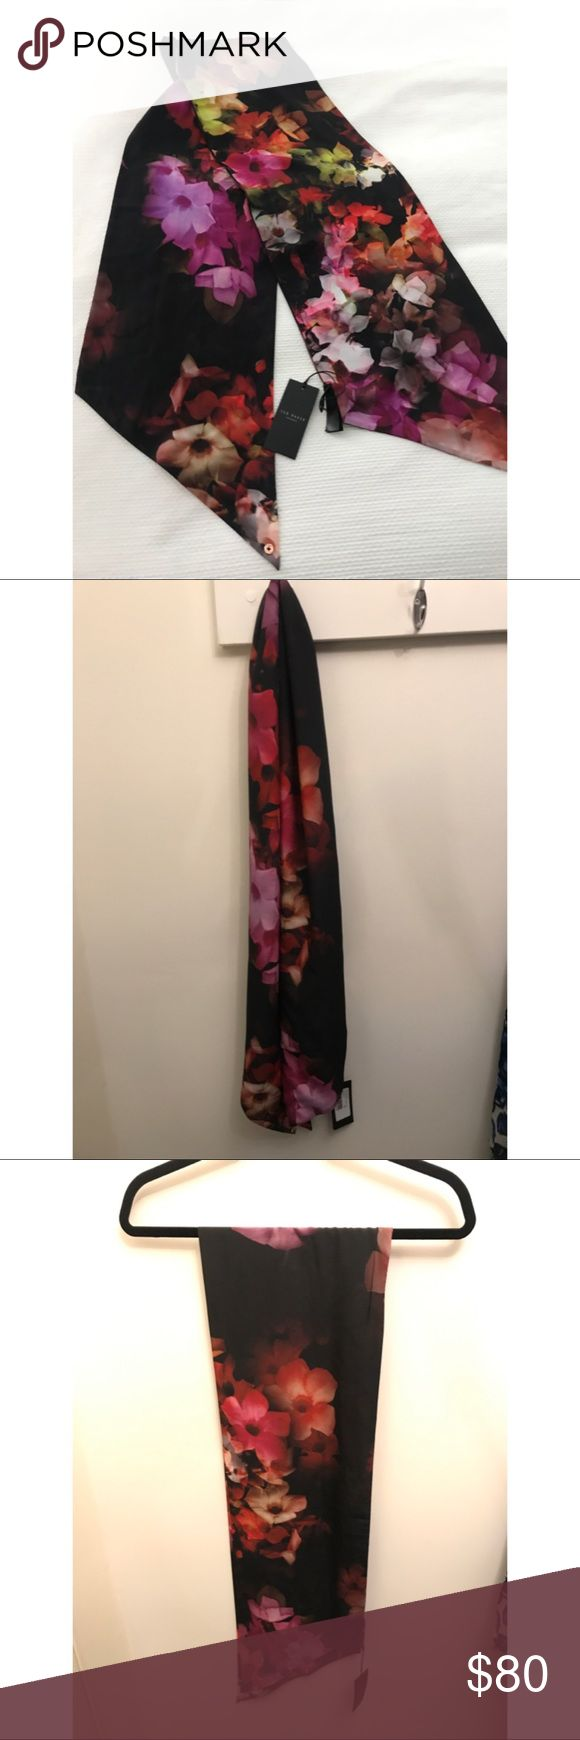 """Ted Baker London Floral Skinny Scarf NEW WITH TAGS! Ted Baker """"Cascading Floral"""" Skinny Scarf. Silk. Perfect for updating a springtime outfit or staying warm as the seasons change. Ted Baker London Accessories Scarves & Wraps"""